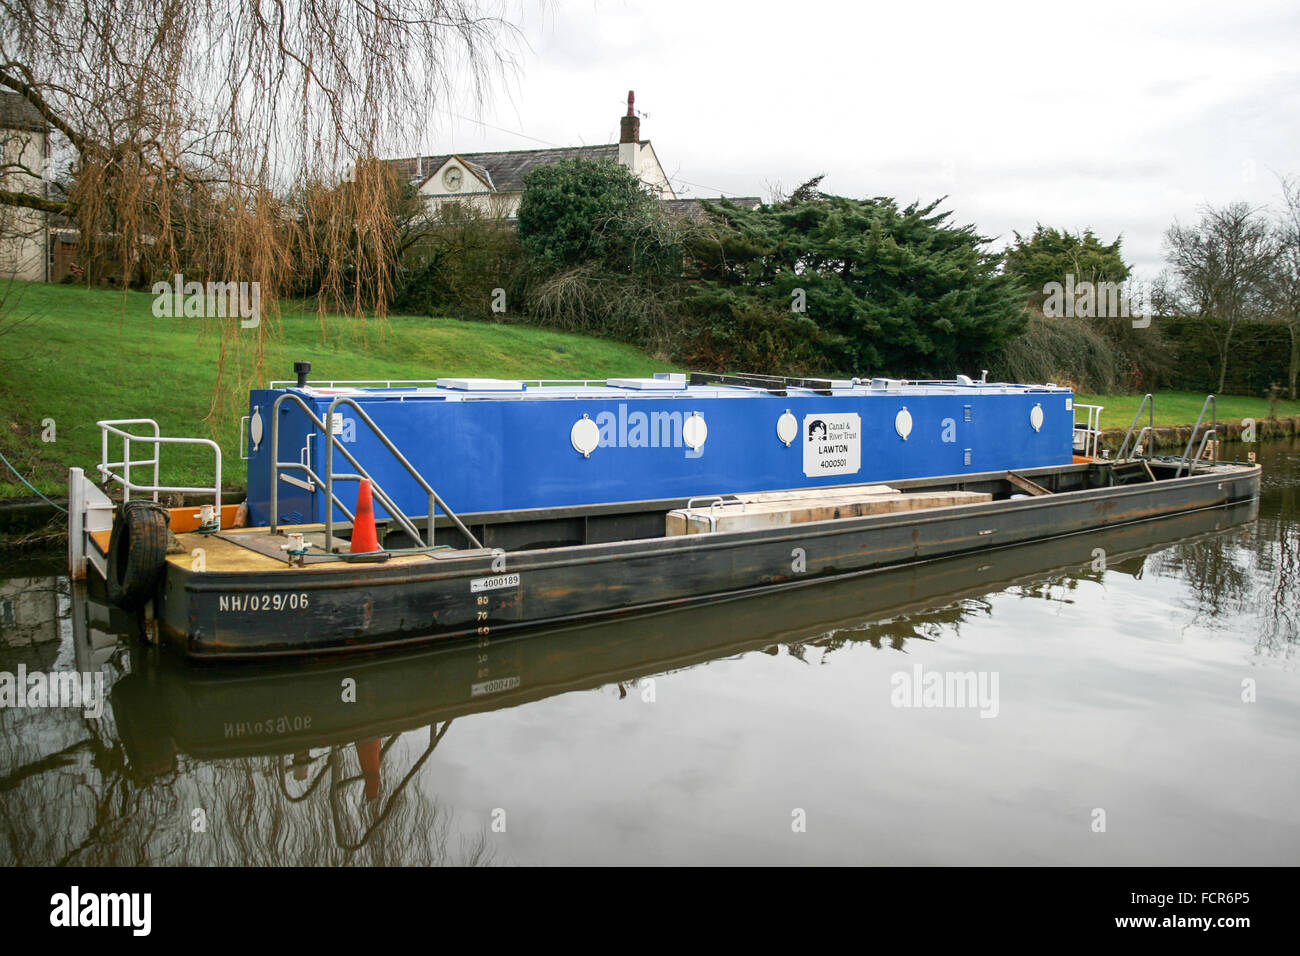 Canal work boat and butty on the Macclesfield Canal - Stock Image